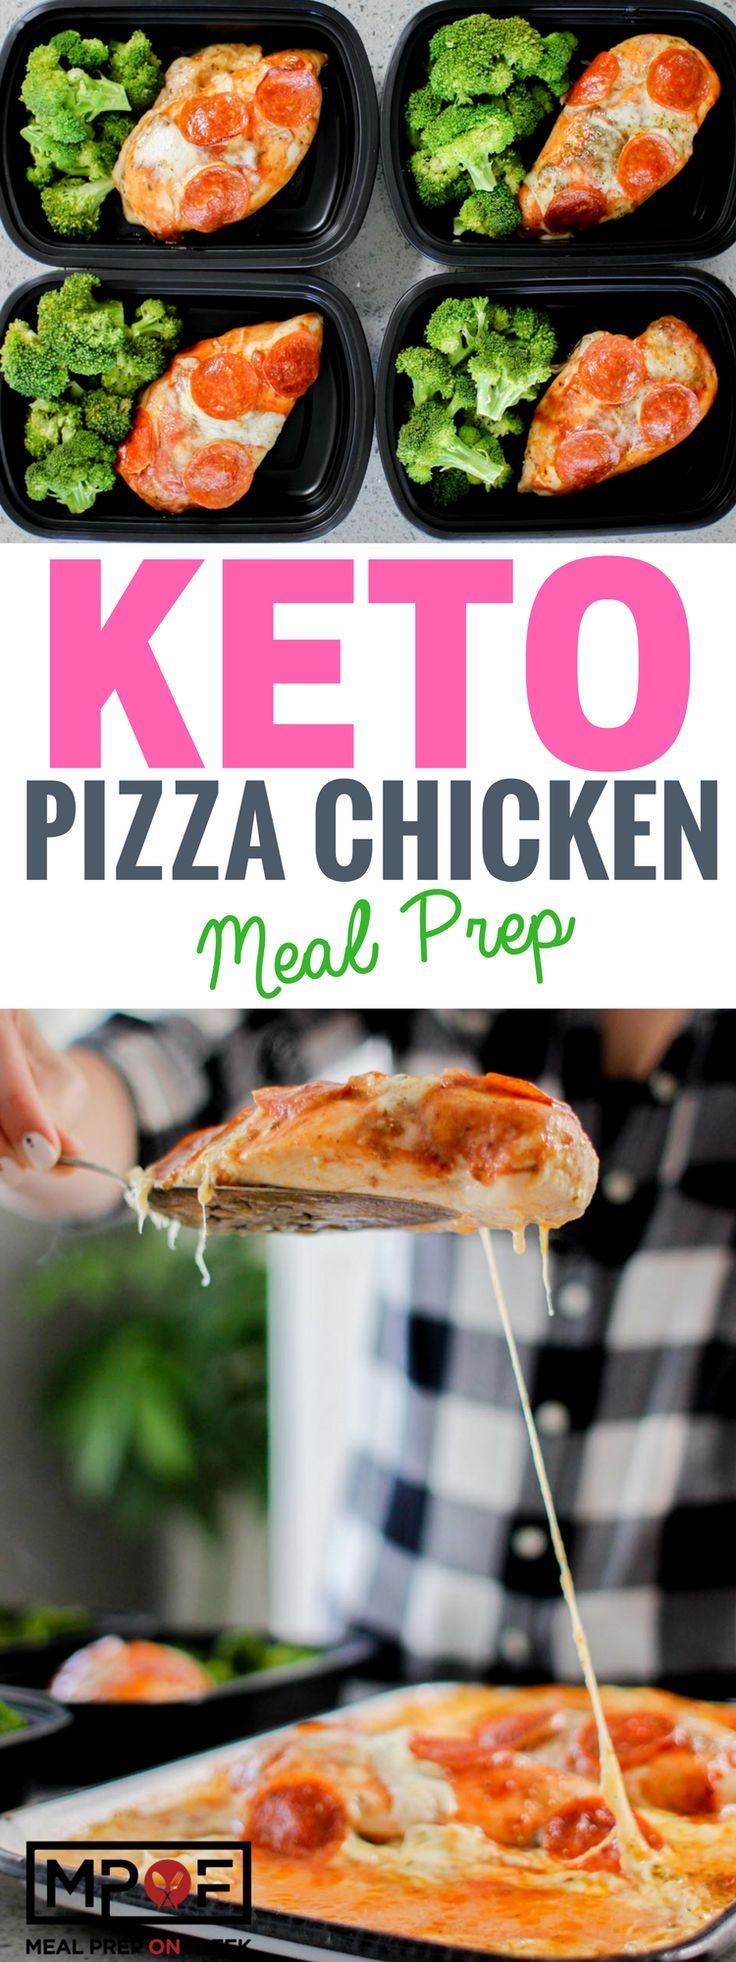 Pizza Chicken Meal Prep Recipe - This pizza chicken recipe is a low carb recipe, keto recipe, and gluten free recipe! A great way to eat healthy pizza. #ketodiet #lowcarbdiet #glutenfree #keto #ketorecipes